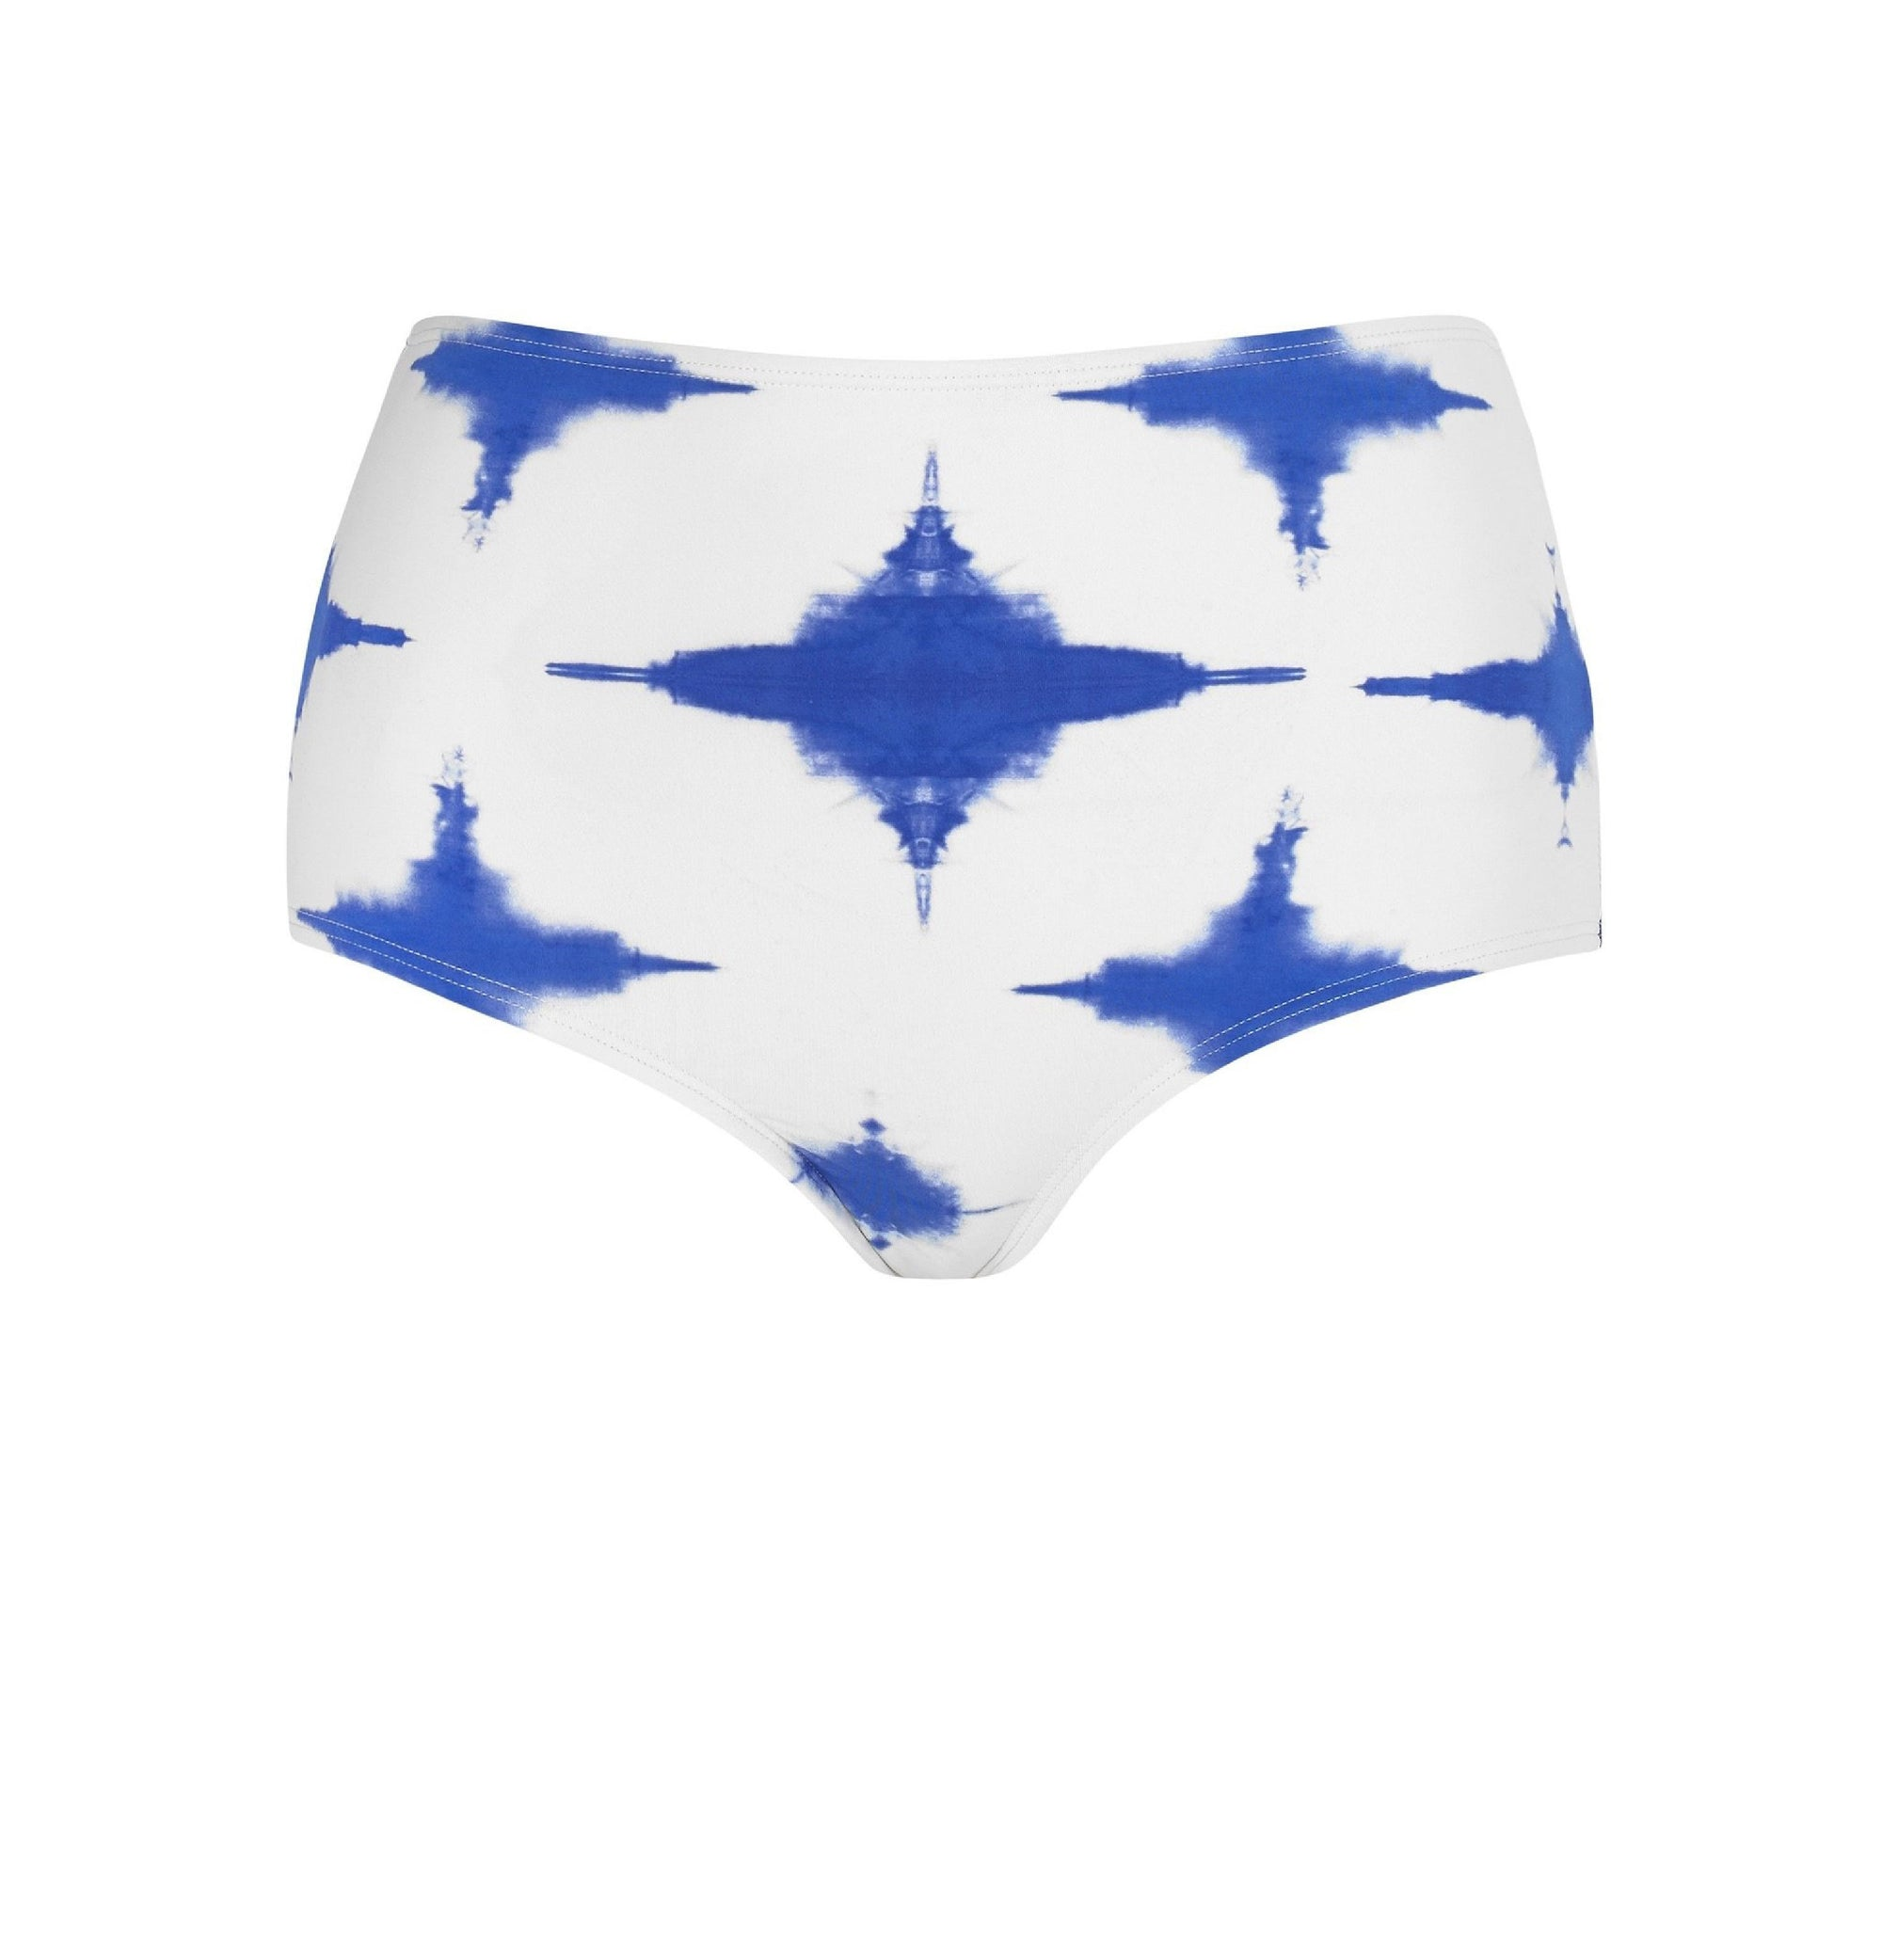 Paper London ethical swimwear - Sunshine Bikini Bottom Printed Swim-paperlondon-superbulky